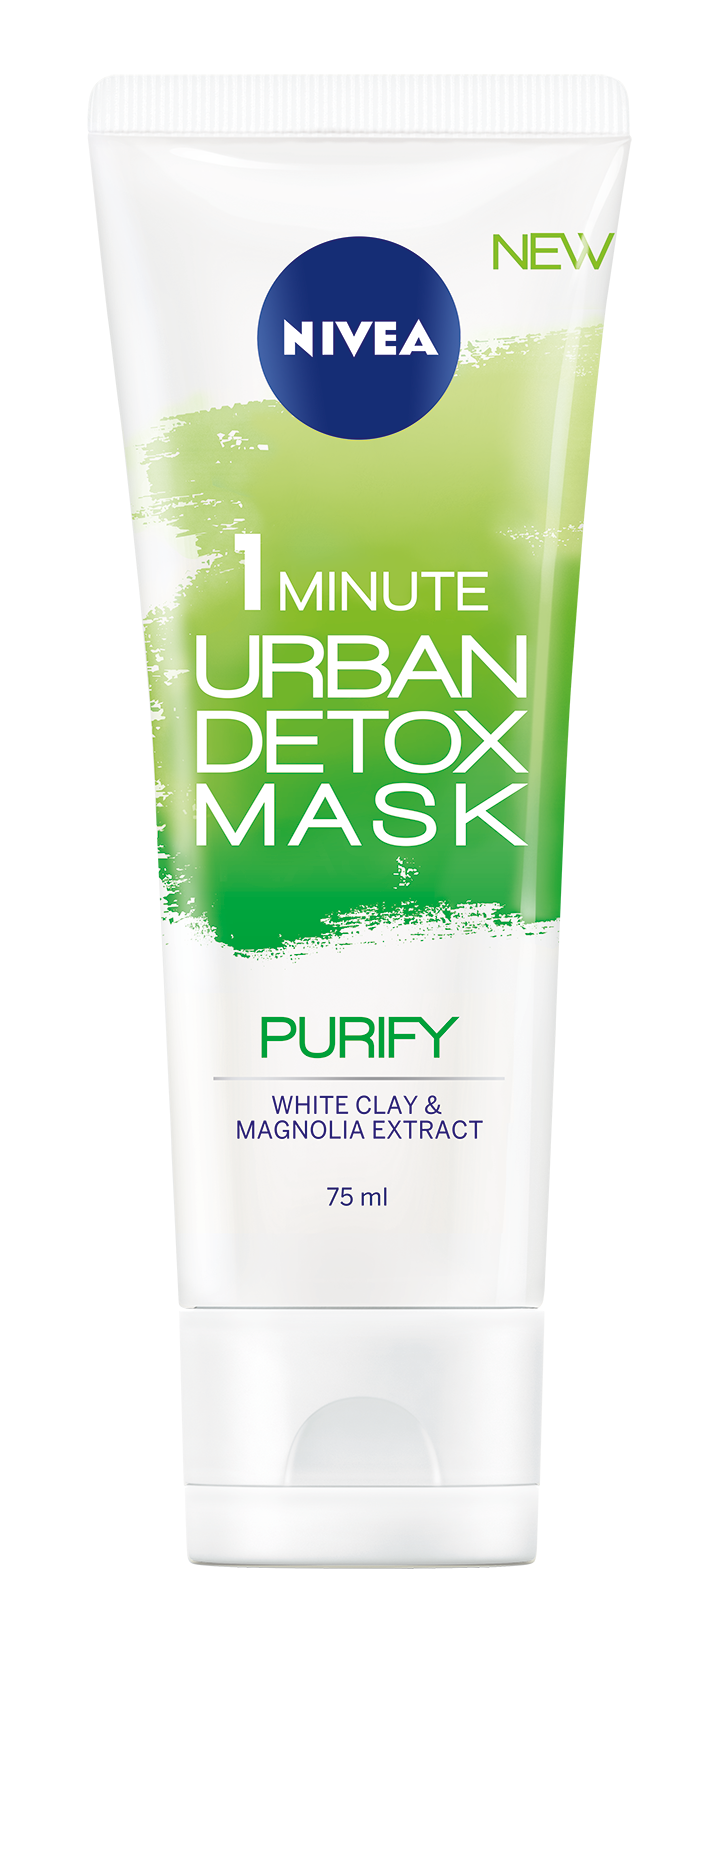 NIVEA_1_Minute_URBAN_Detox_Mask_Purify_75ml